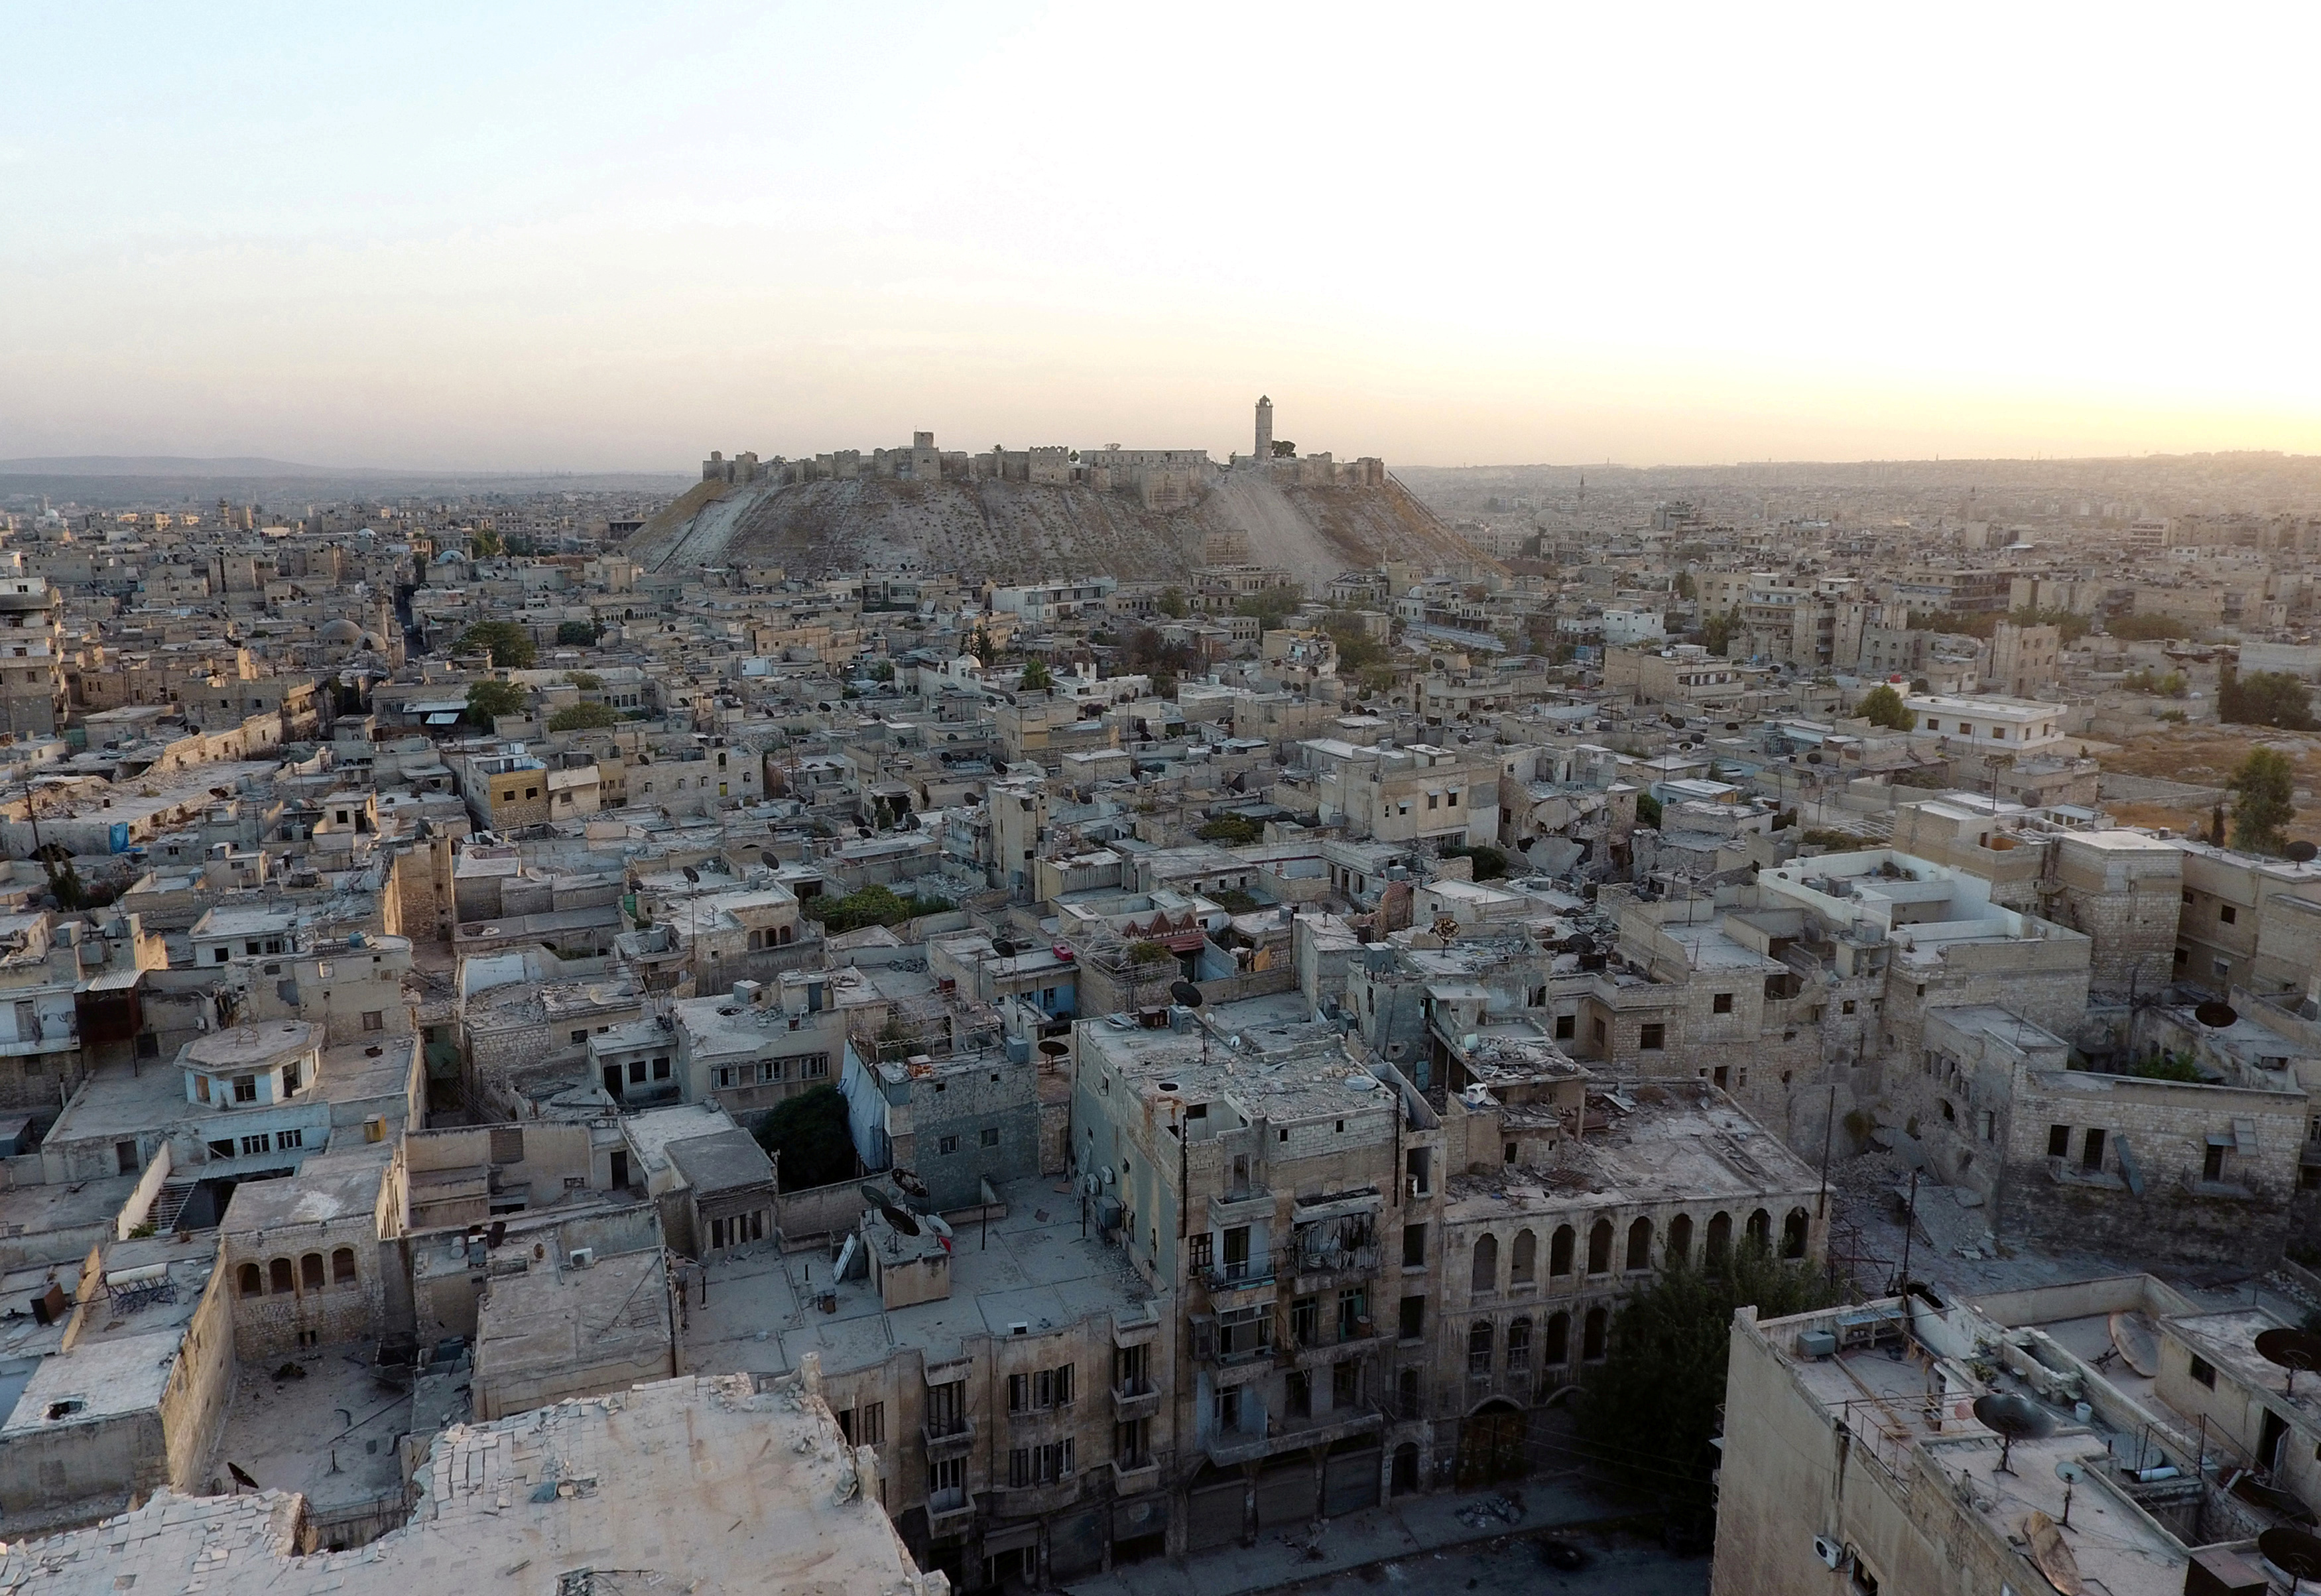 An image taken by a drone shows the Old City of Aleppo and the historic citadel on Oct. 12, 2016. Photo by Abdalrhman Ismail/Reuters